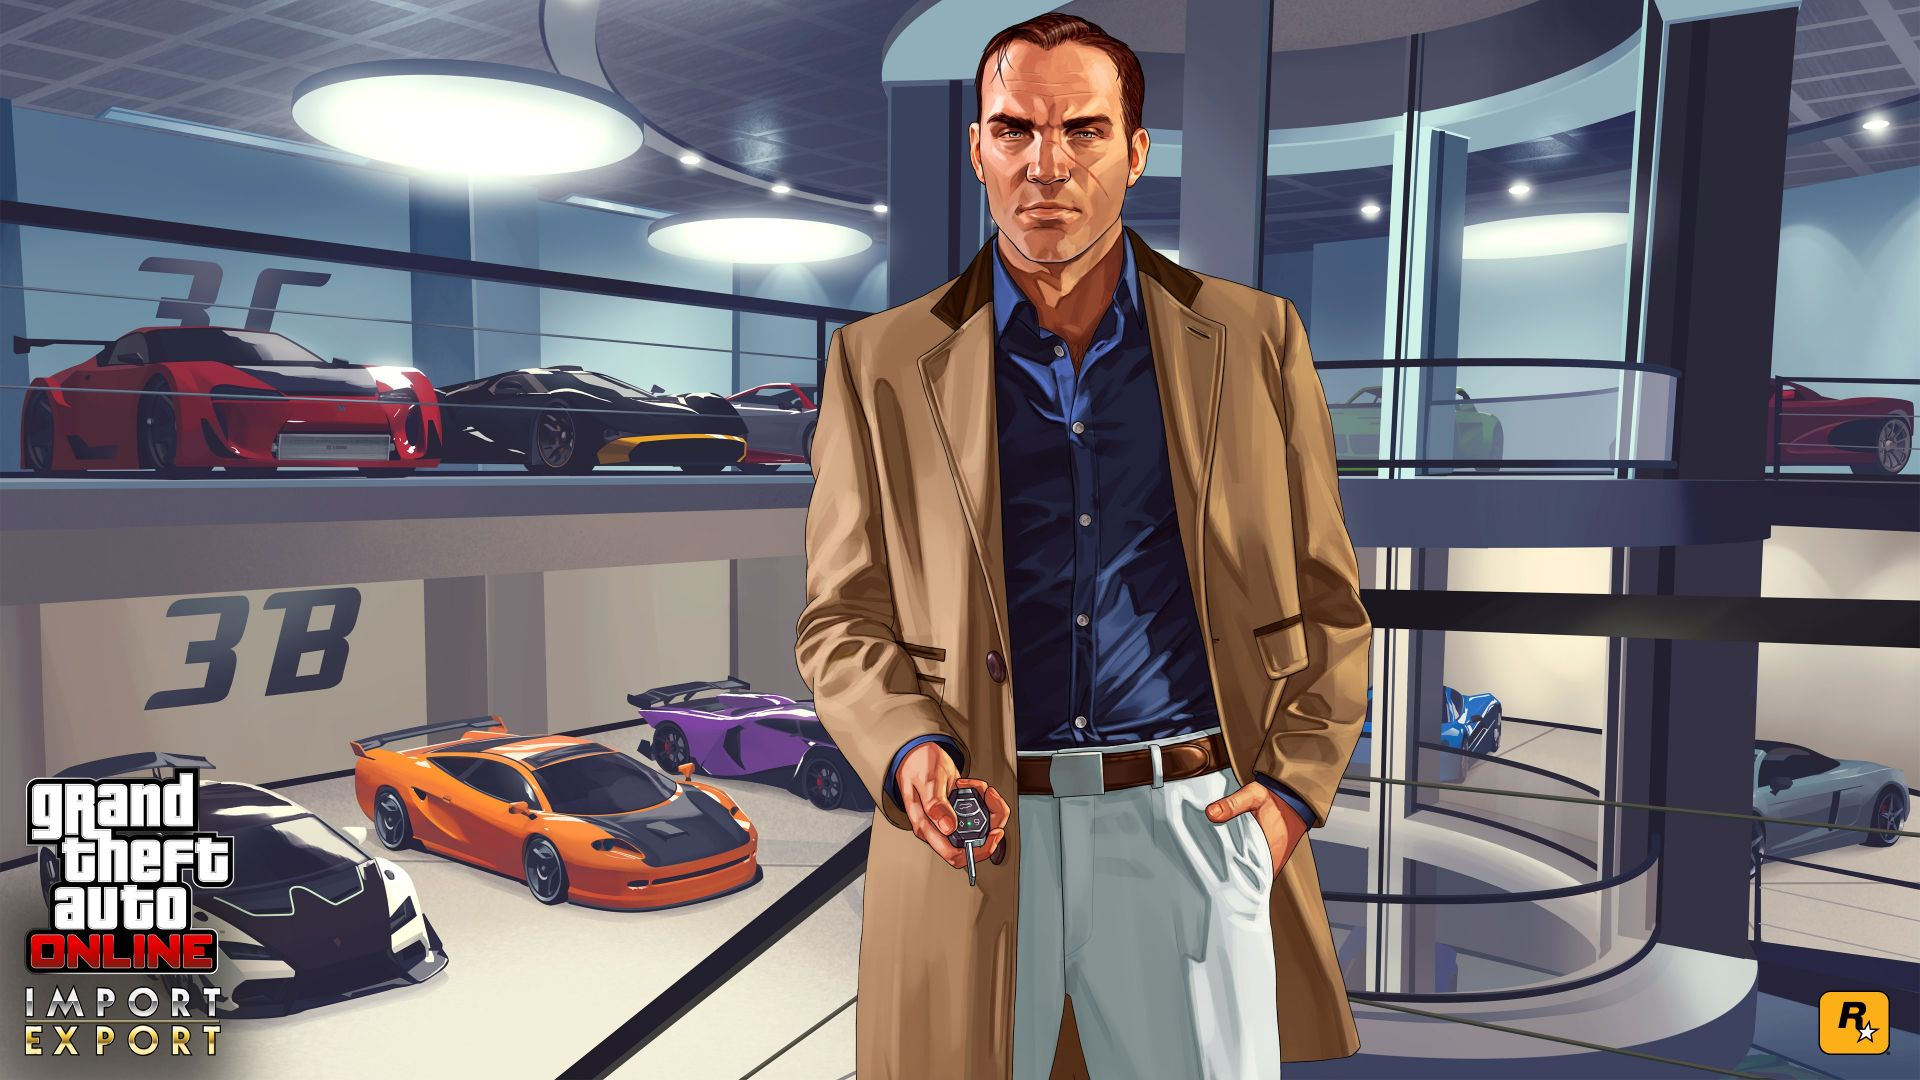 Wallpaper Garage from grand theft auto v video game